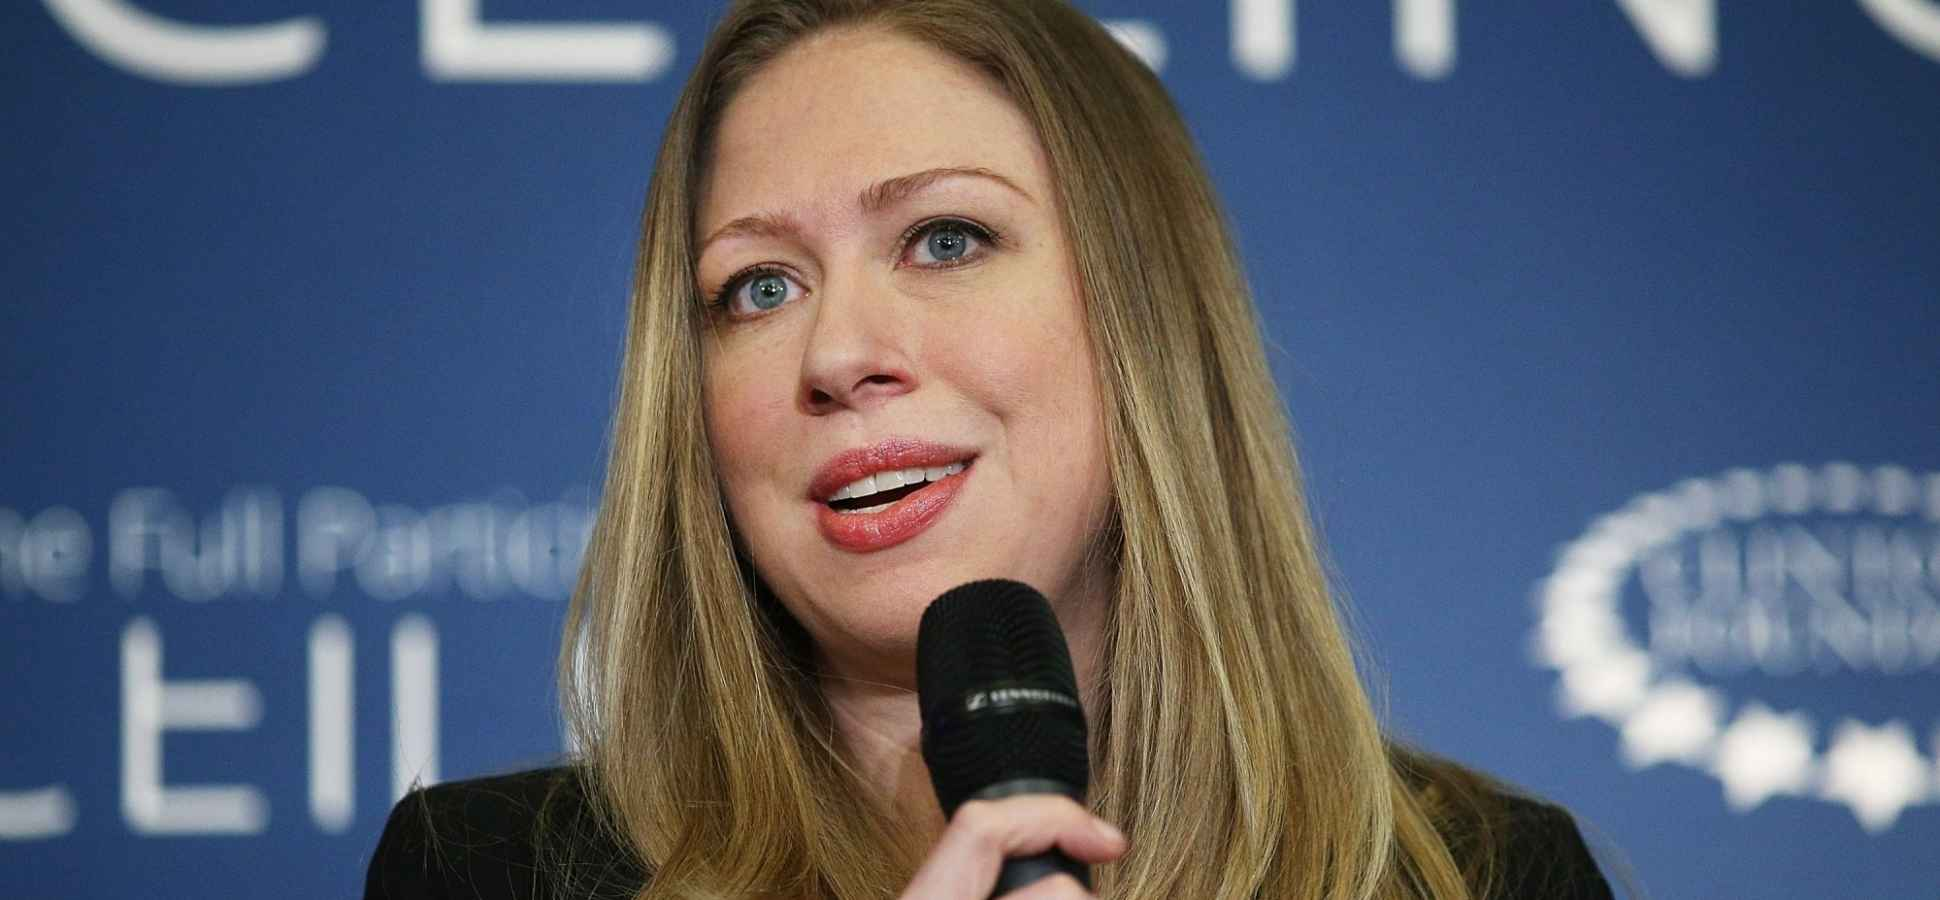 Chelsea Clinton on How to Craft the Most Persuasive Pitch | Inc.com